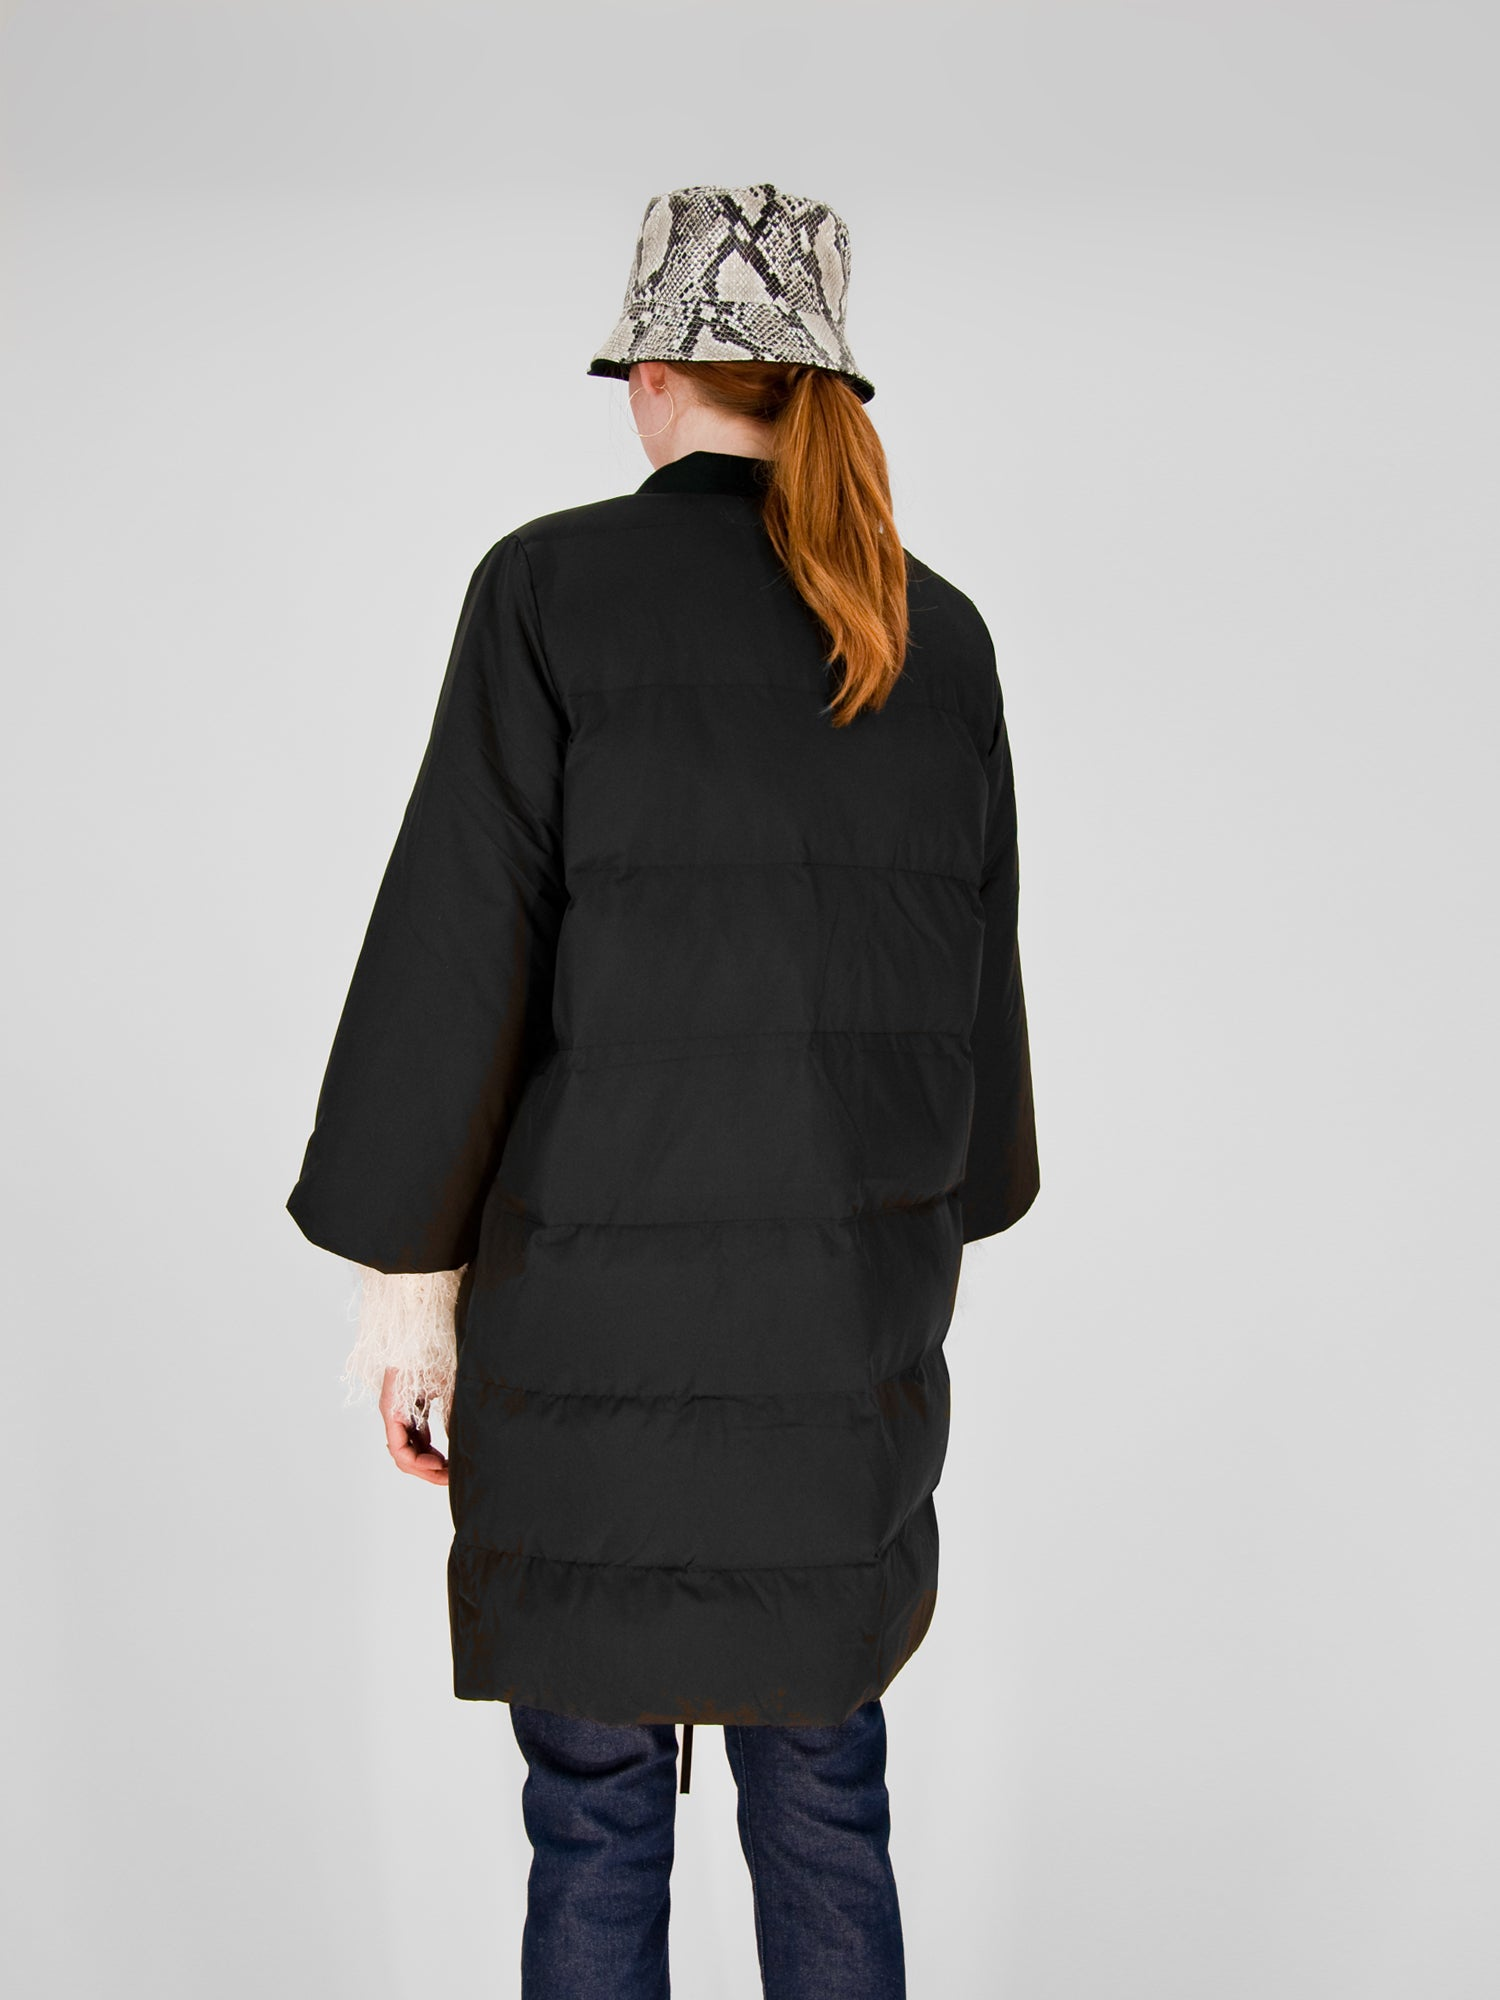 Intentionally Blank - PHIL Puffer Lapel Coat / Black